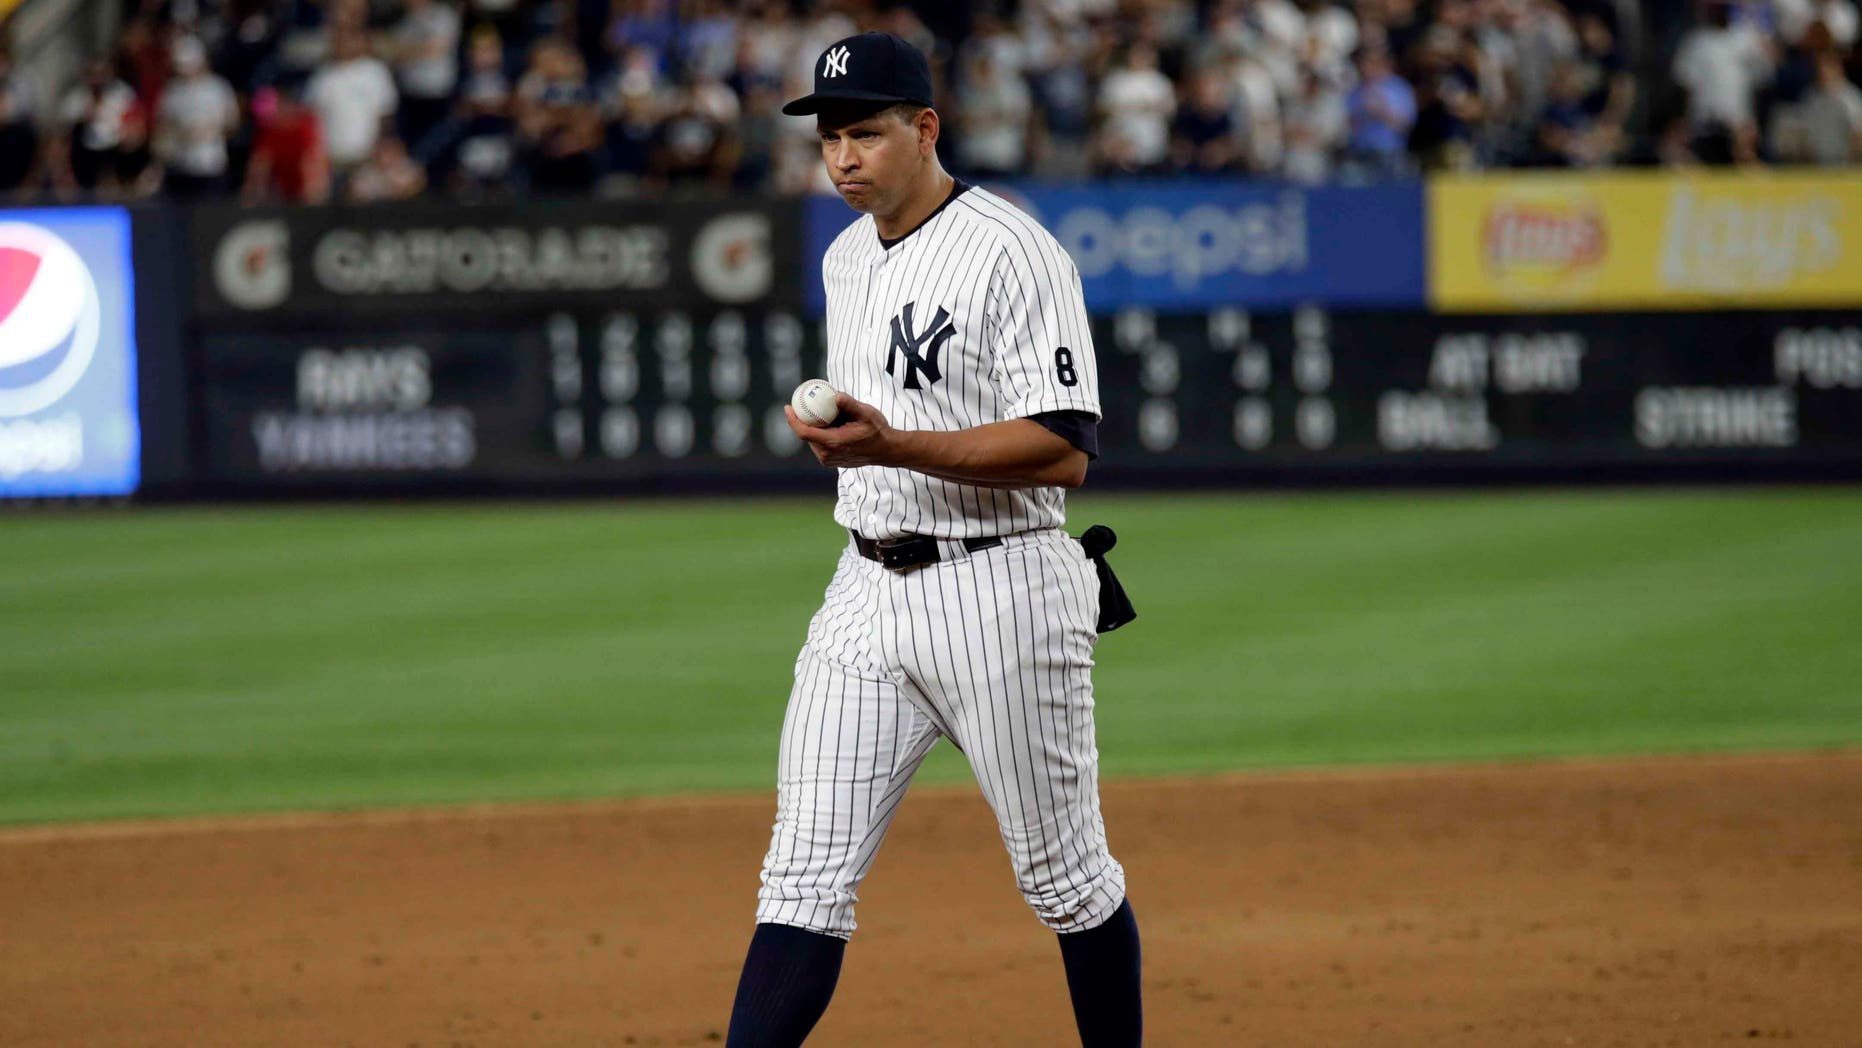 Alex Rodriguez walks towards third base in his final game as a Yankee player, Friday, Aug. 12, 2016, in New York.